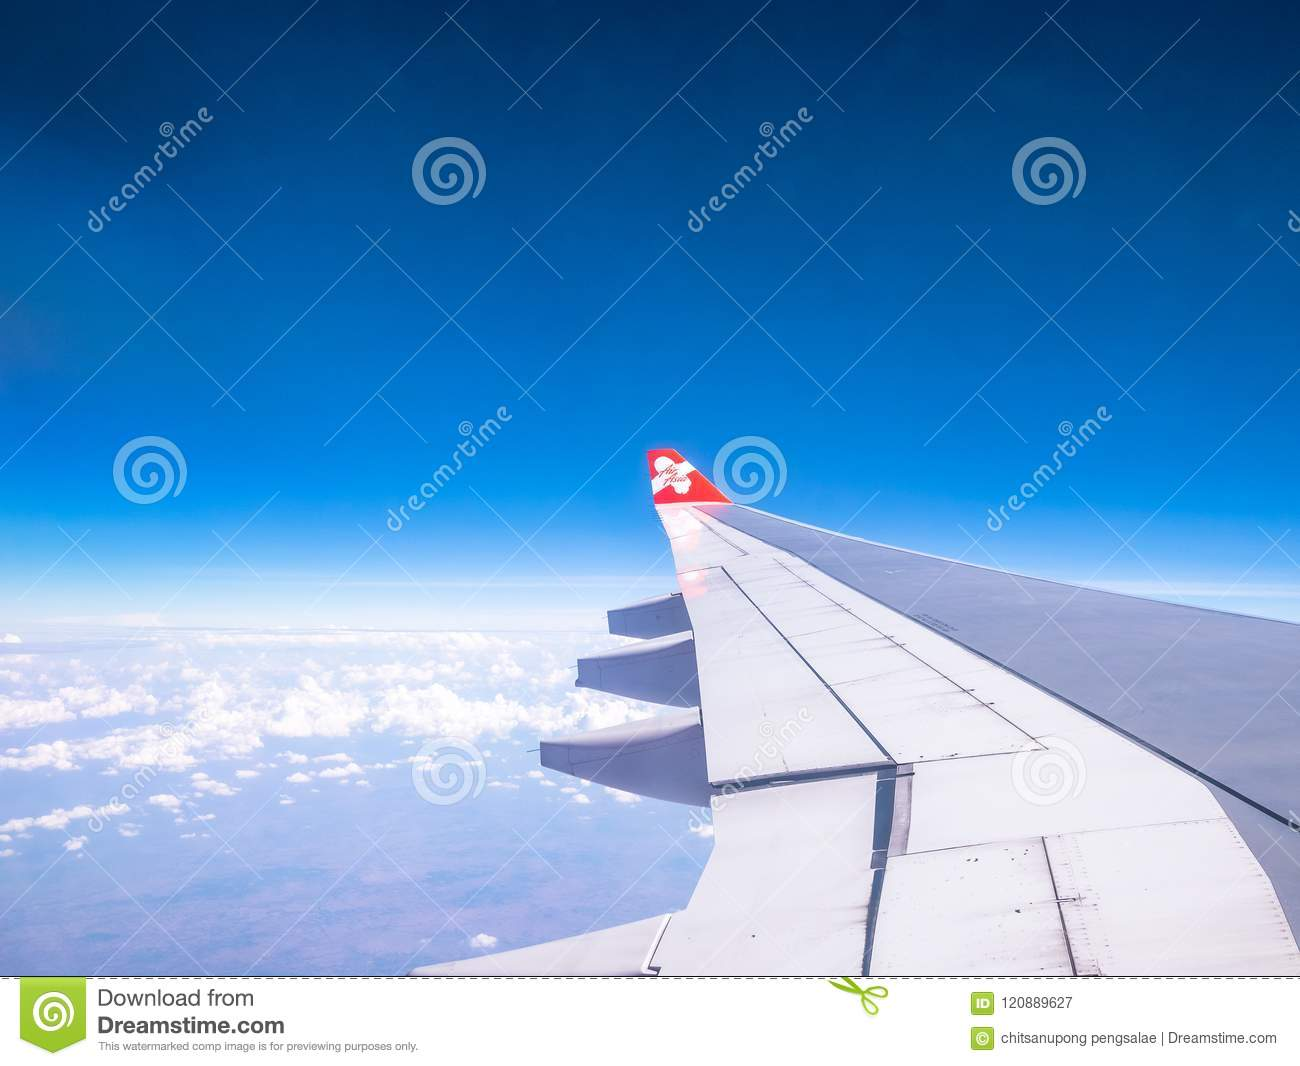 SEOUL SOUTH KOREA APRIL 18 2018:AirAsia plane flying in sky over Incheon International Airport, Seoul on 18 Apr 2018.AirAsia is on